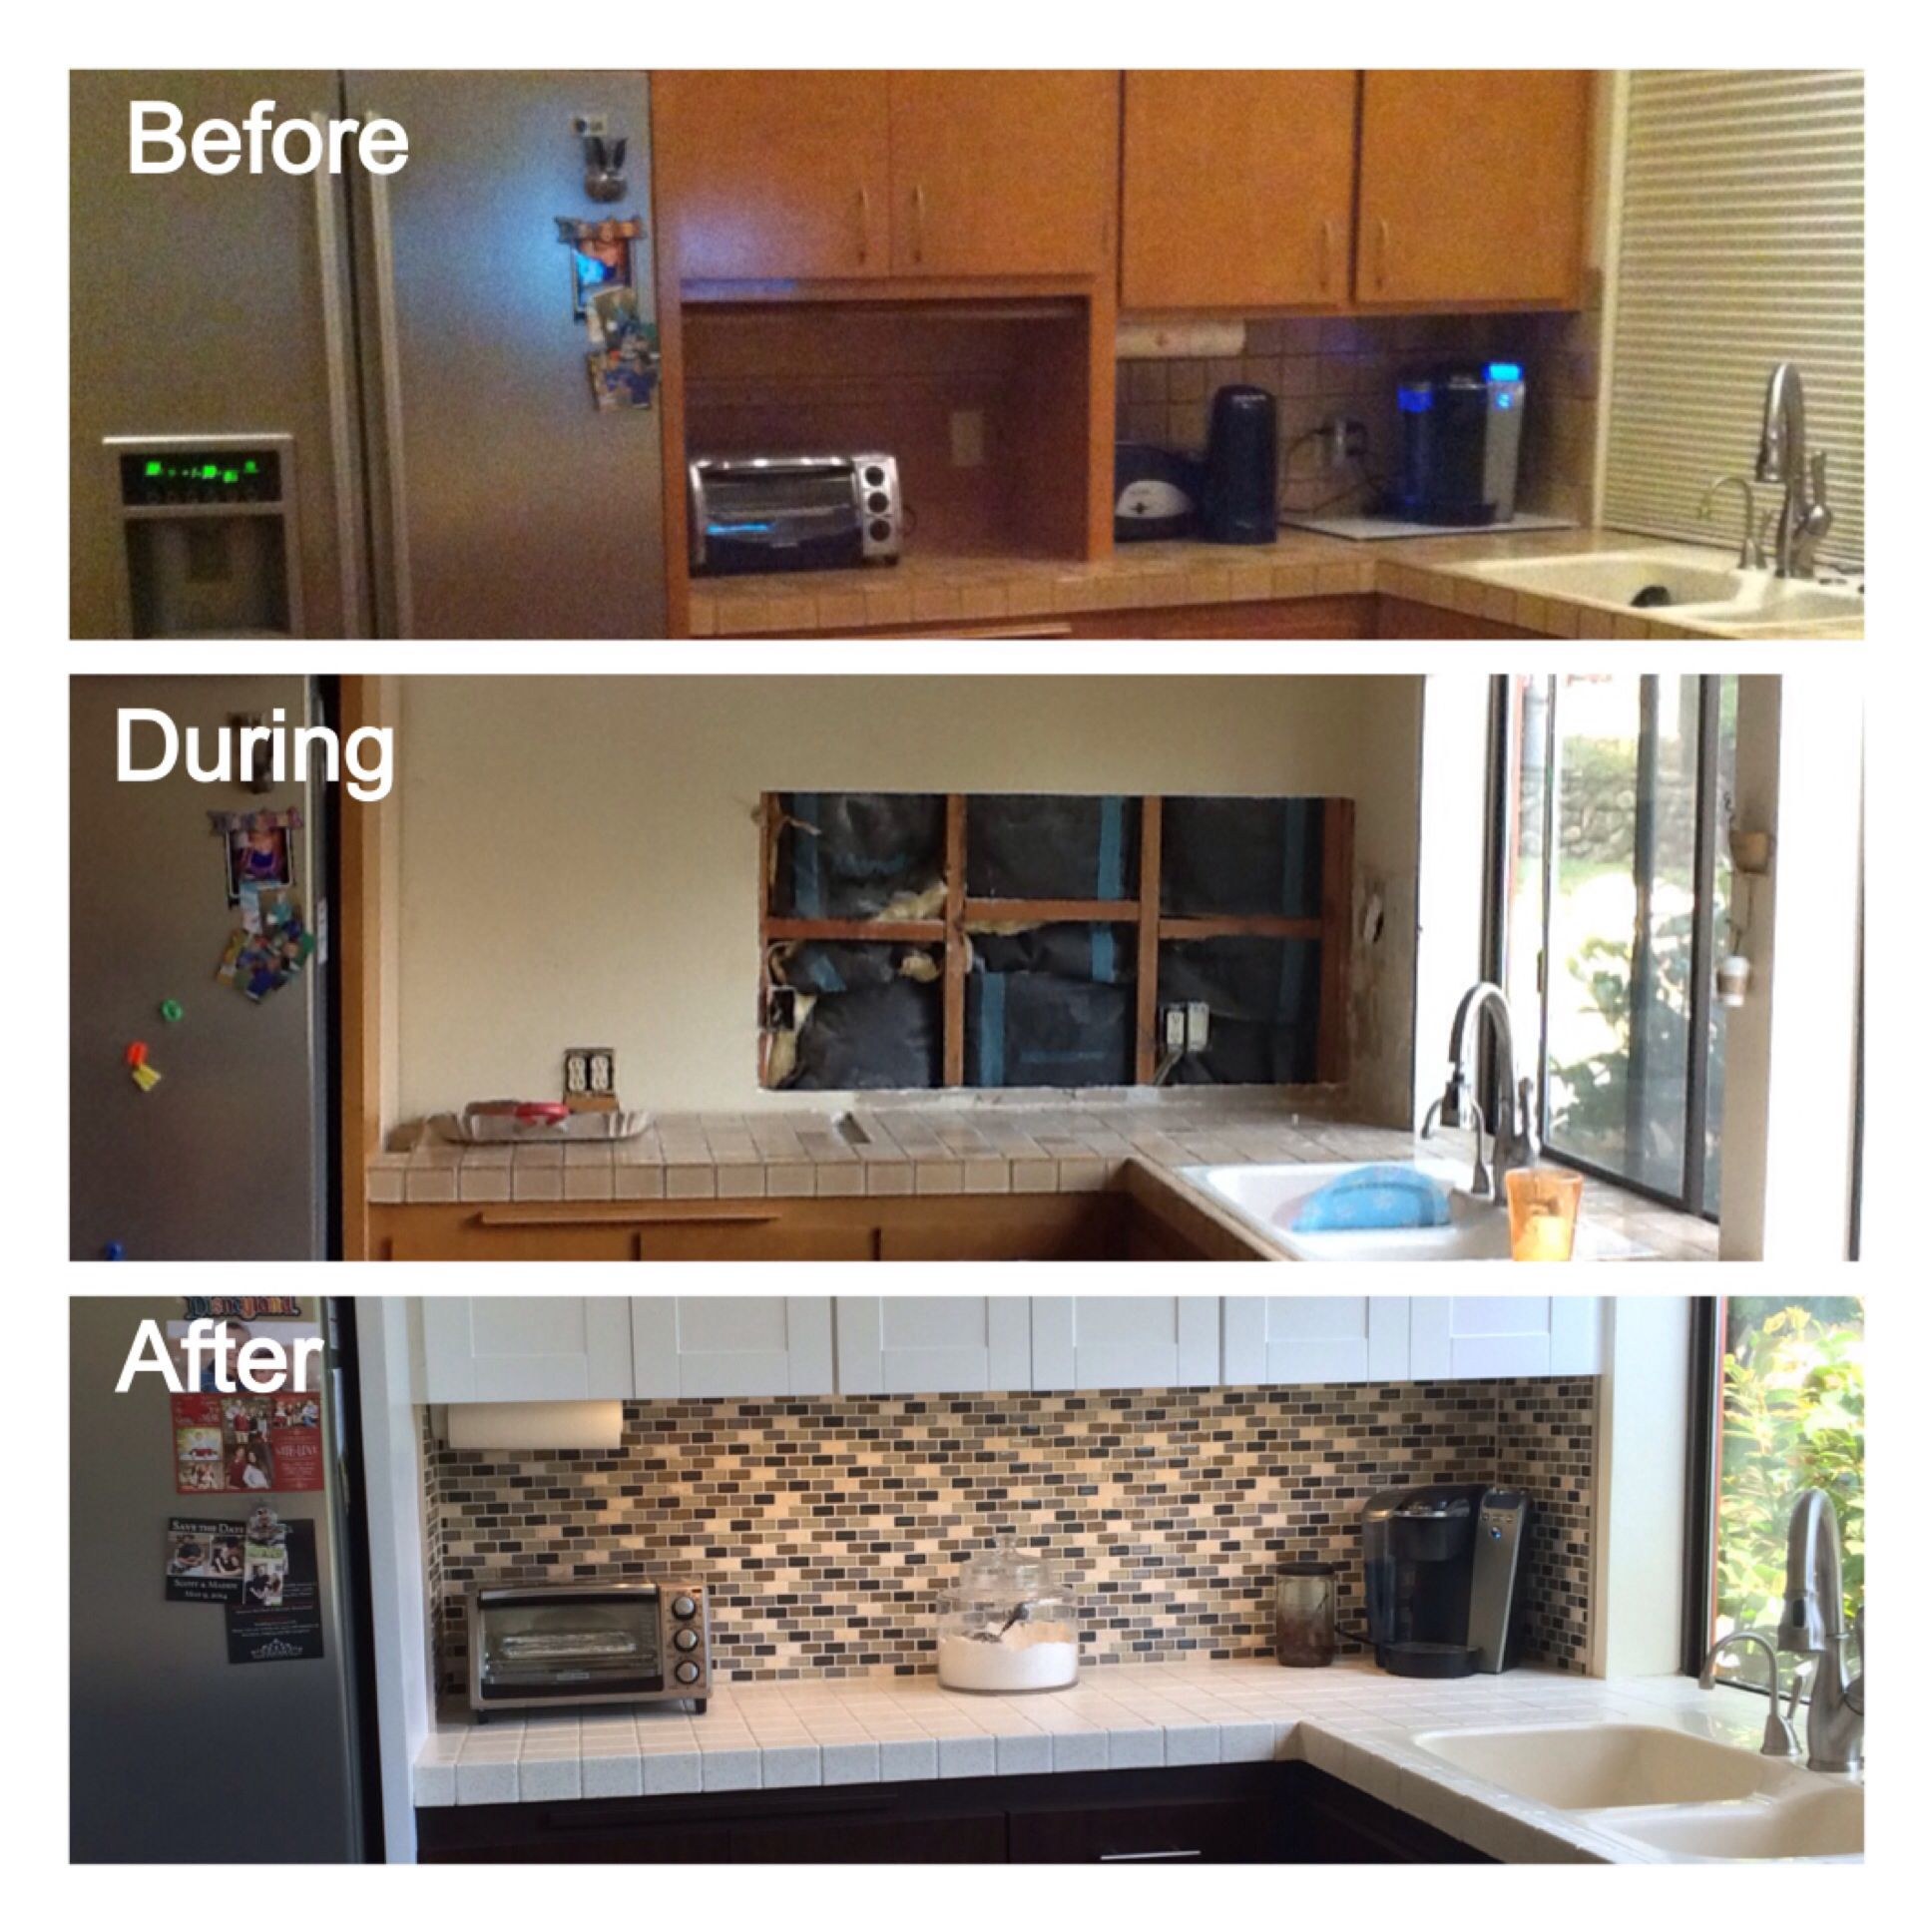 Before And After Kitchen Remodel Remove Appliance Garage Gain